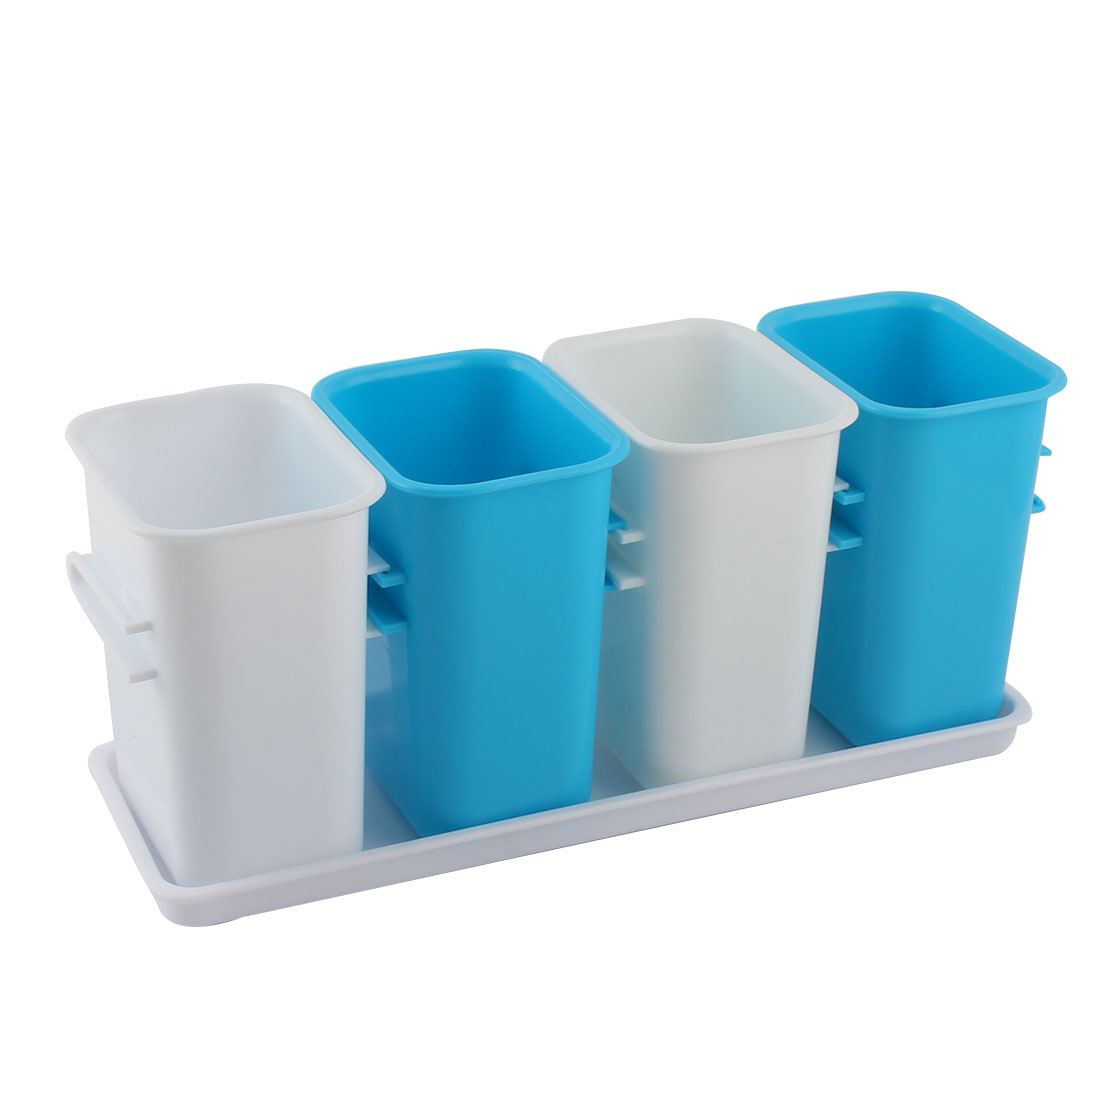 Home Kitchen PP 4 Compartment Chopsticks Spoon Tableware Storage Box Holder w Tray